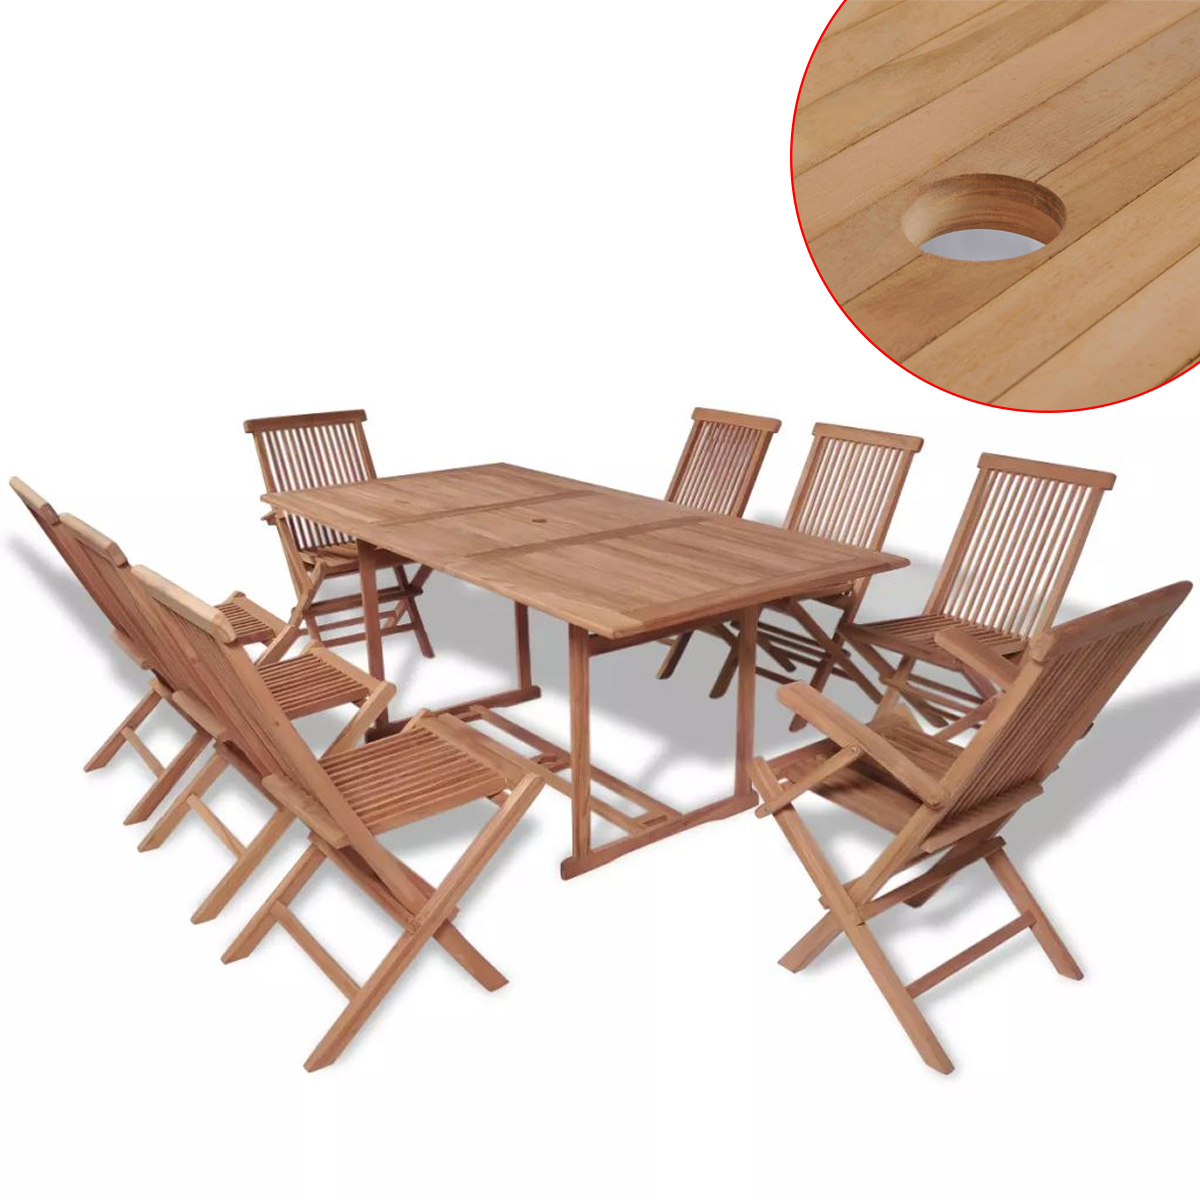 Details About Garden Dining Set 9 Pieces Table Chairs Teak Outdoor Foldable Kits